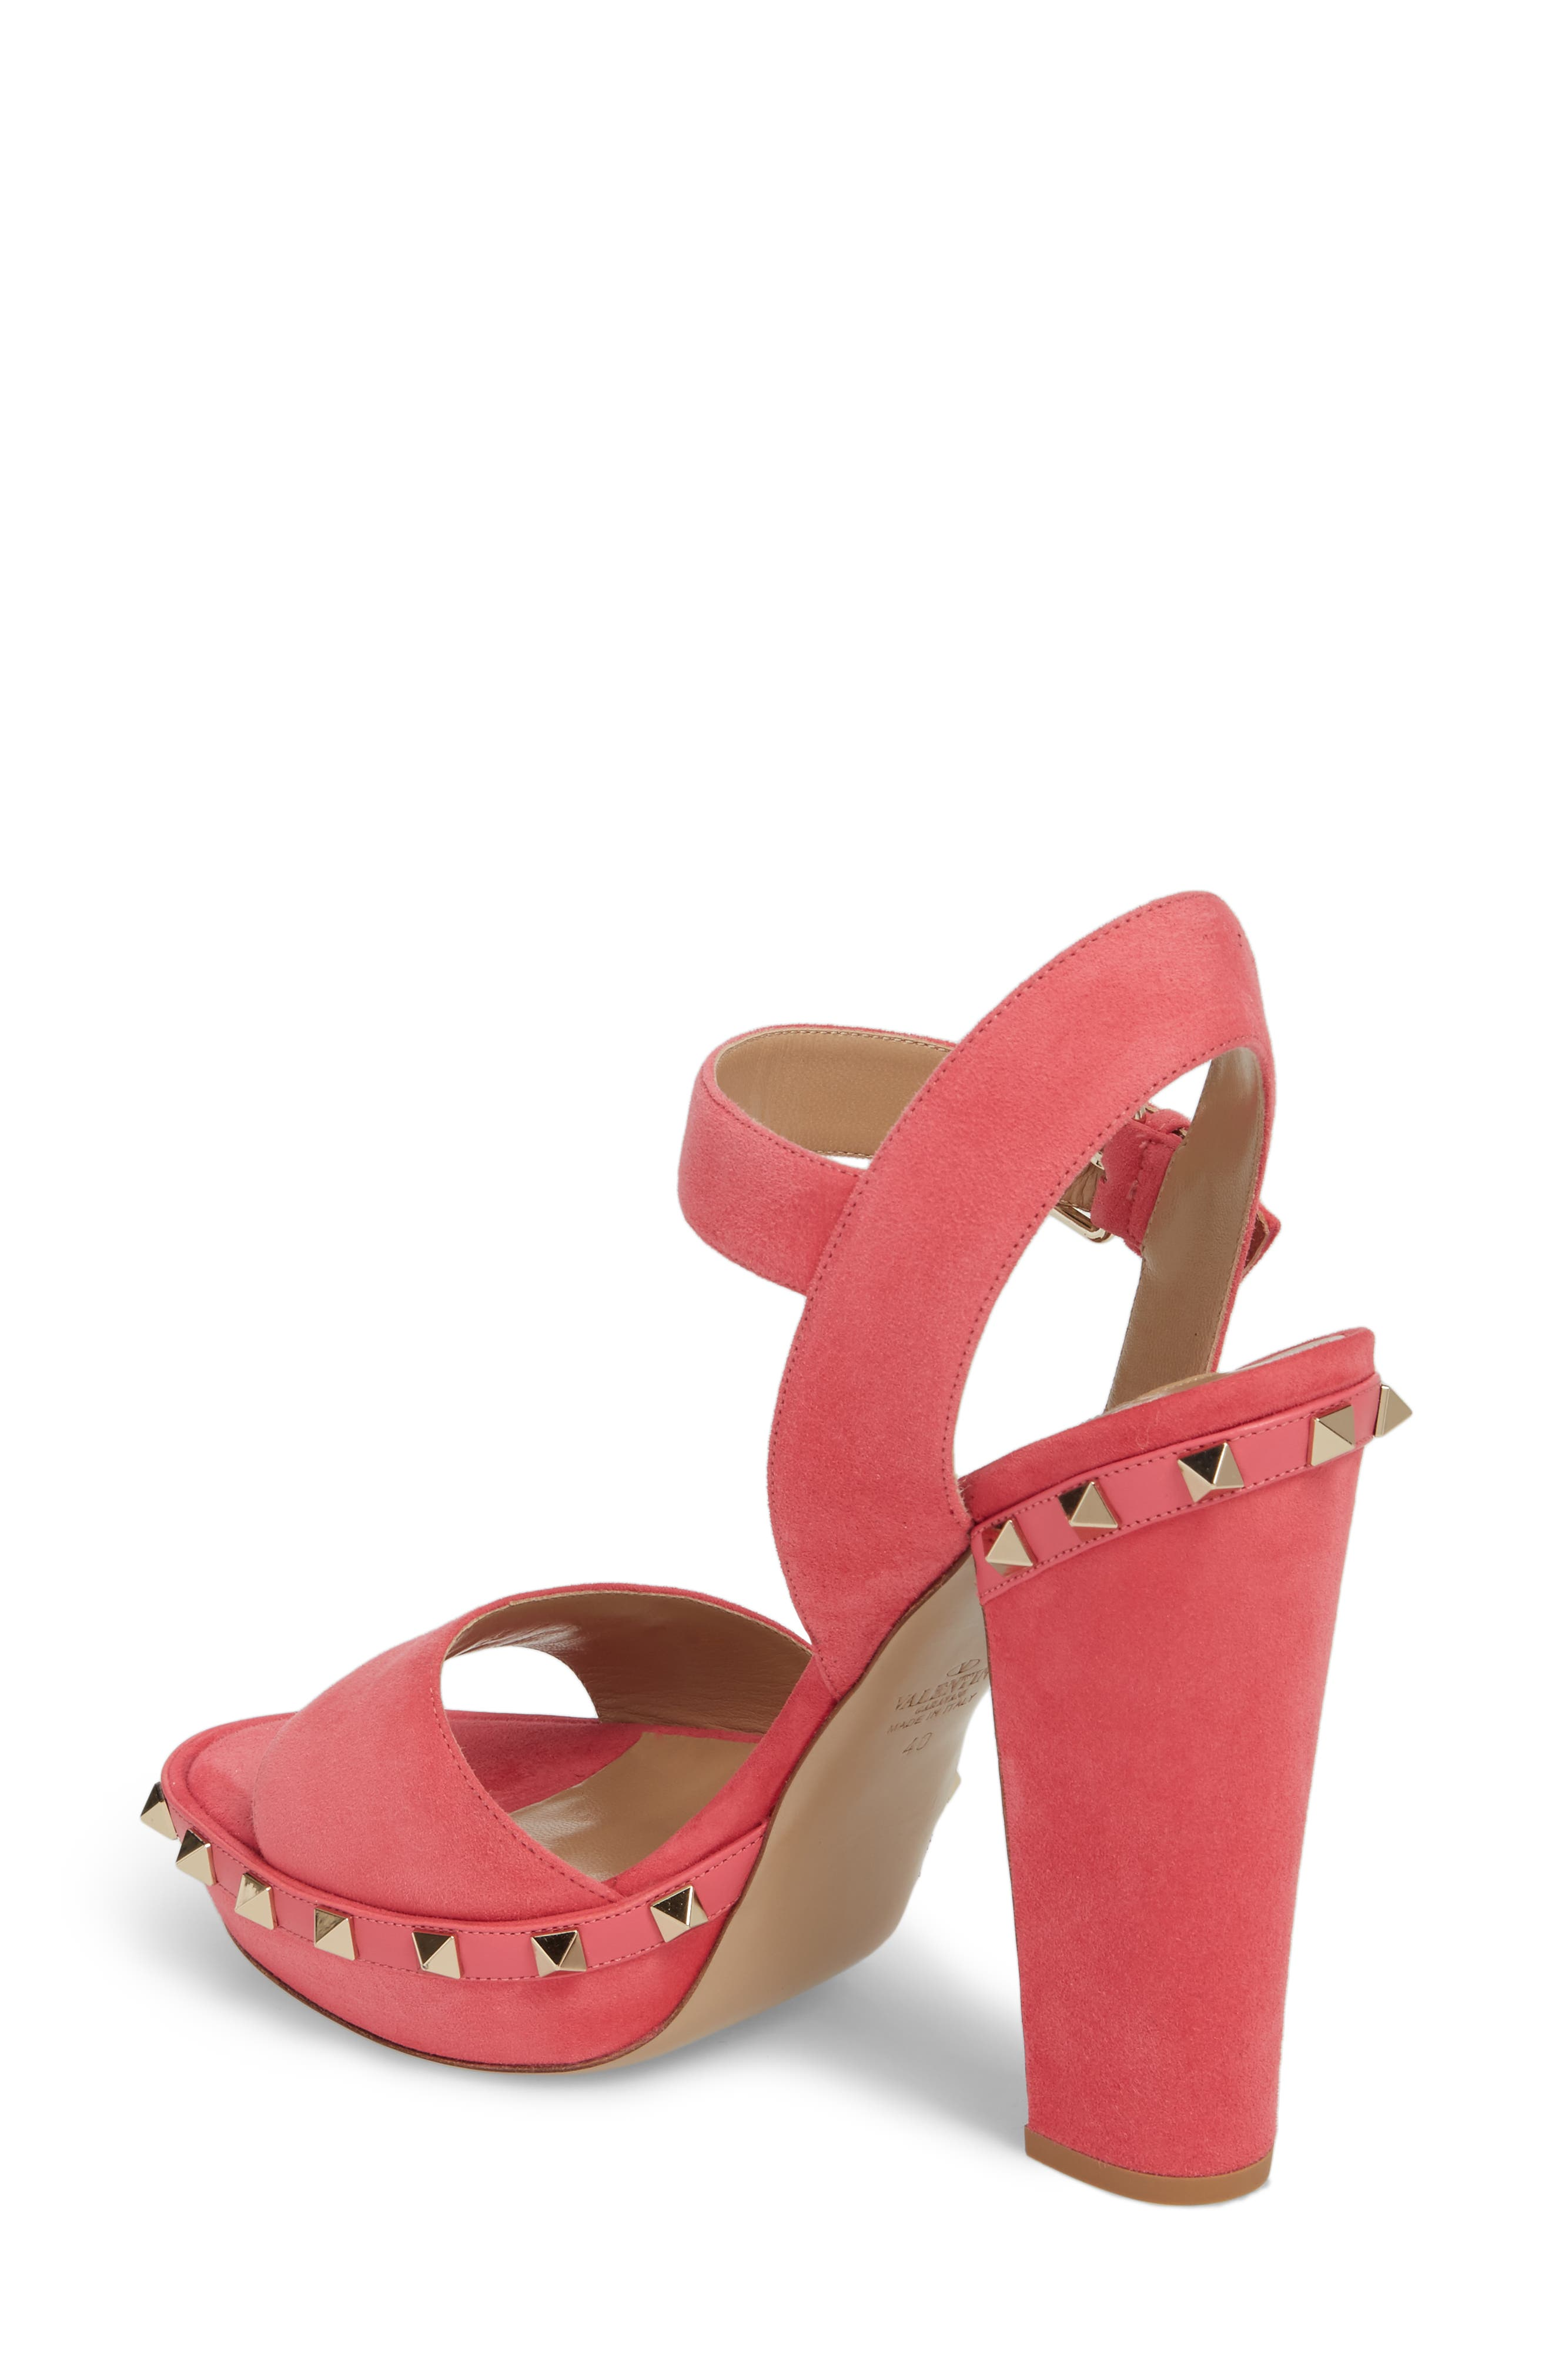 Rockstud Platform Sandal,                             Alternate thumbnail 2, color,                             Shadow Pink